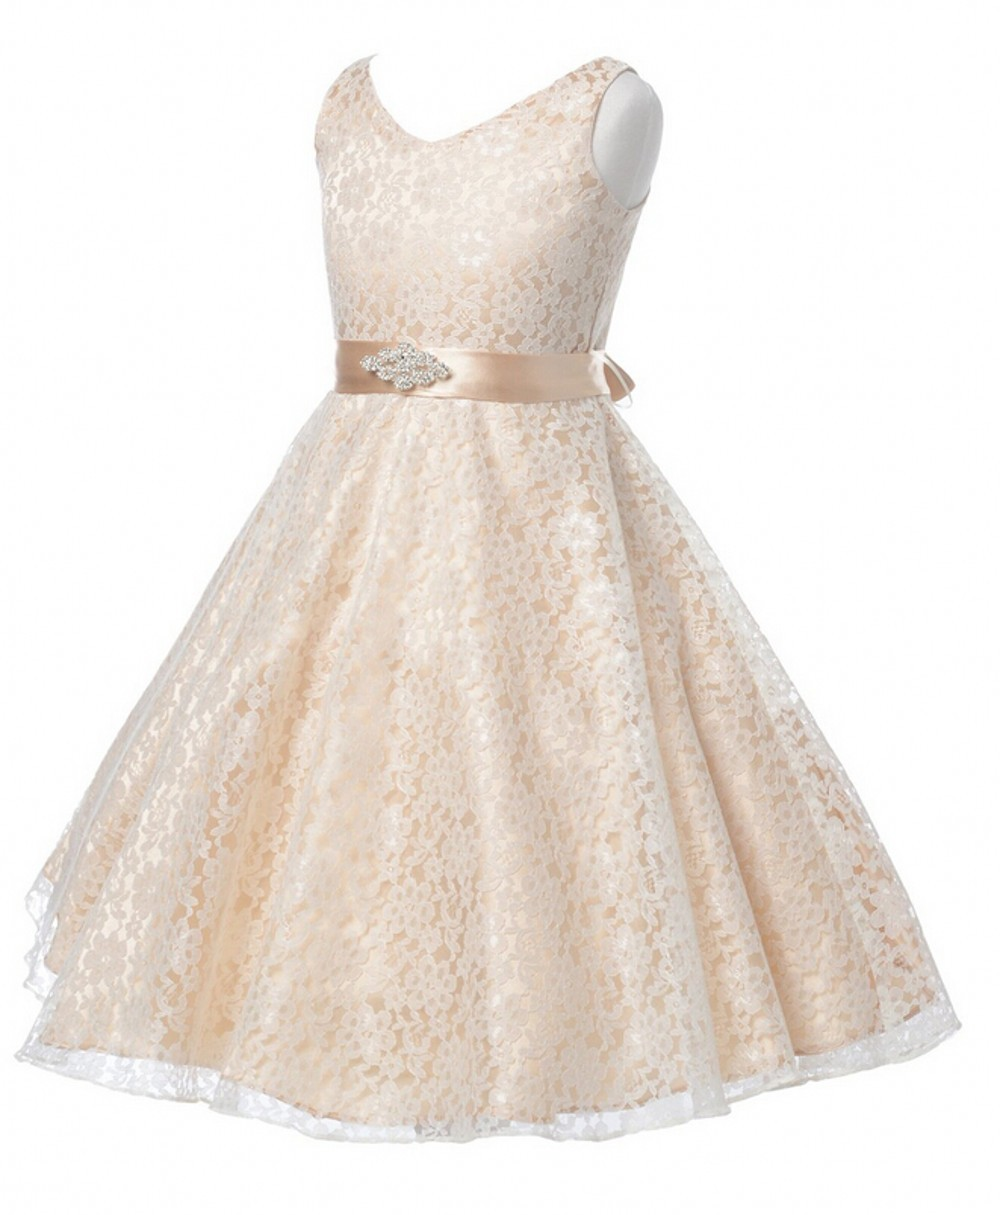 23744be4813 Get Quotations · Sweety Champagne Flower Girl Dresses For Weddings Vestidos  De Primera Comunion First Communion Dresses For Girls